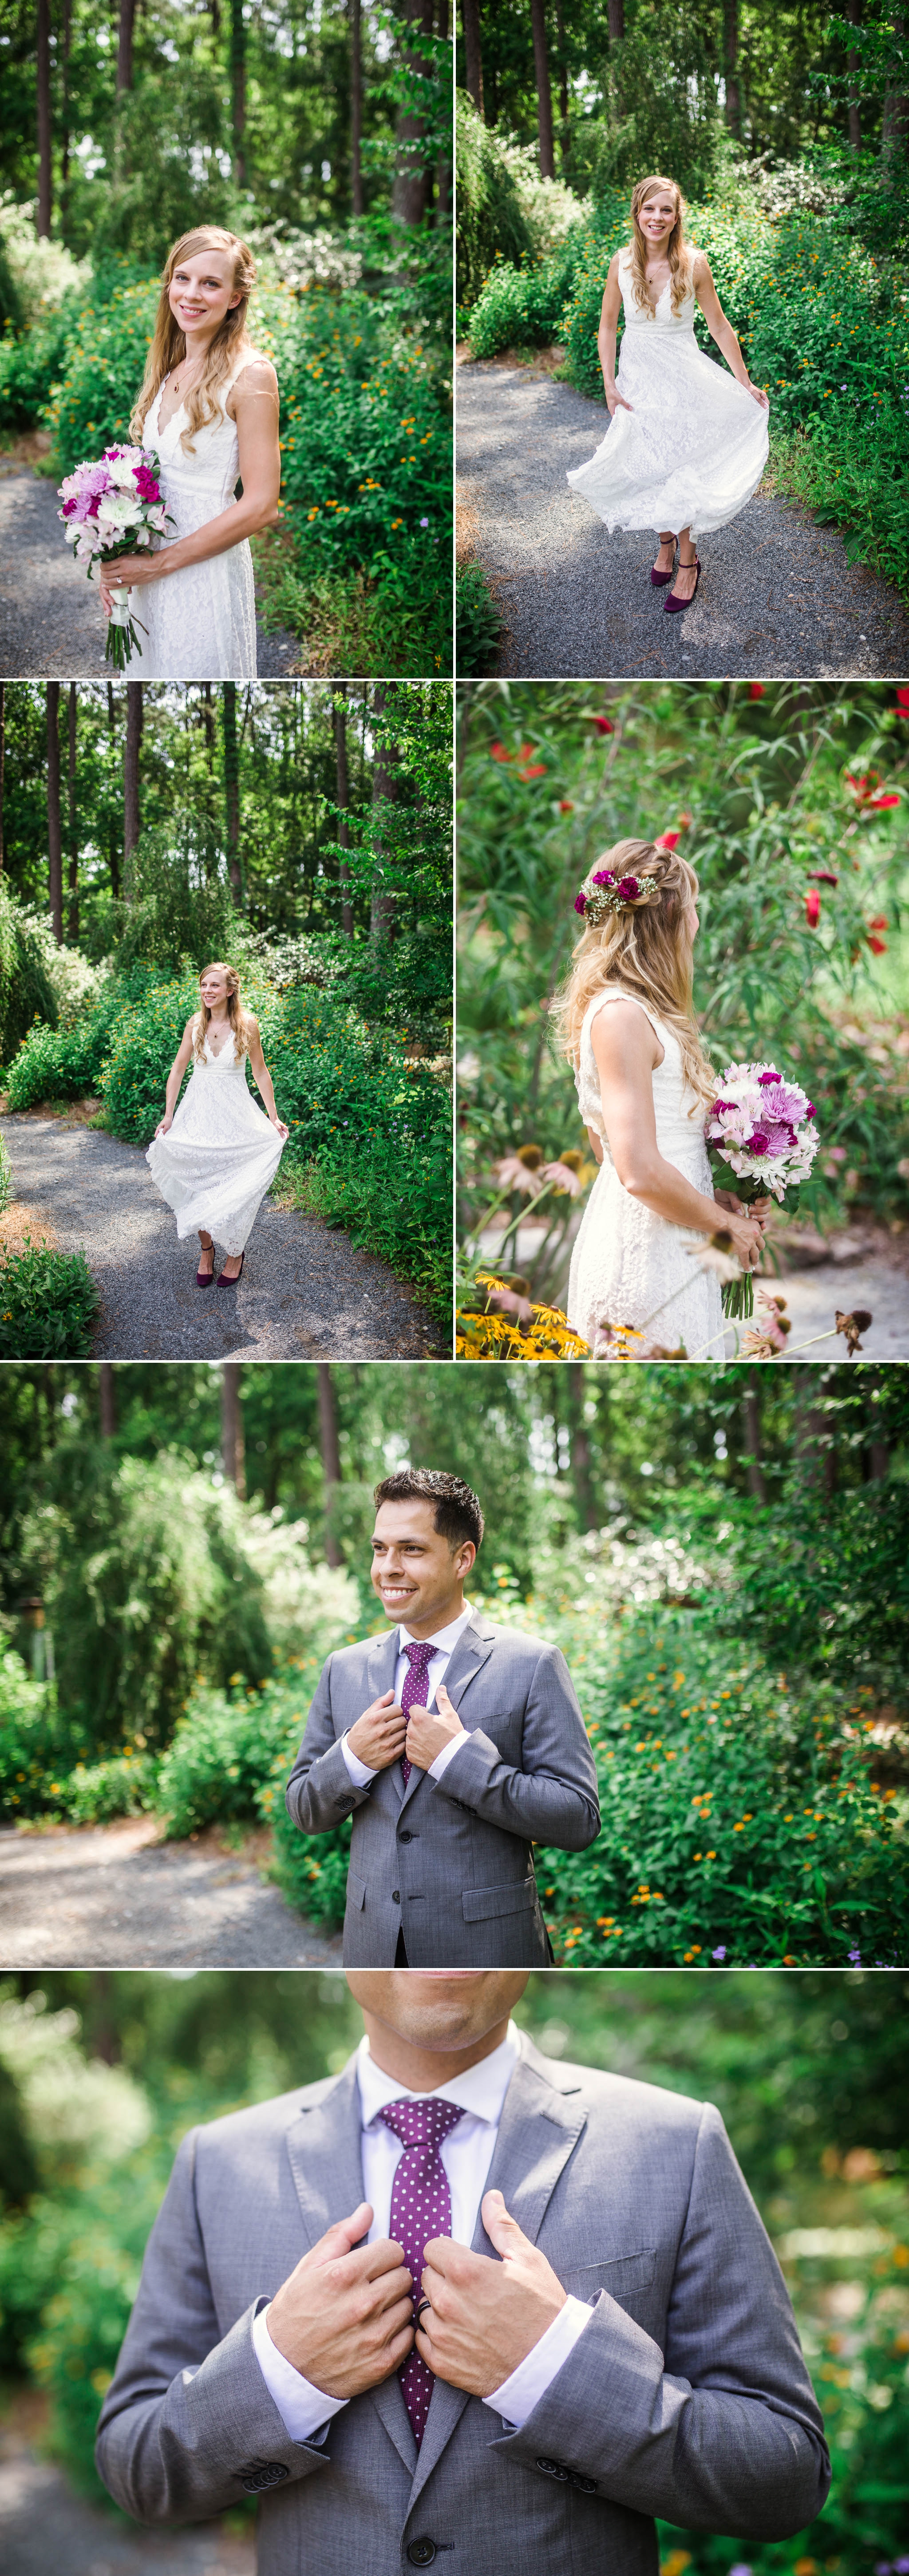 Portraits of Bride and Groom - Kelly and Adam - Elopement at the Cape Fear Botanical Gardens - Fayetteville North Carolina Wedding Photographer